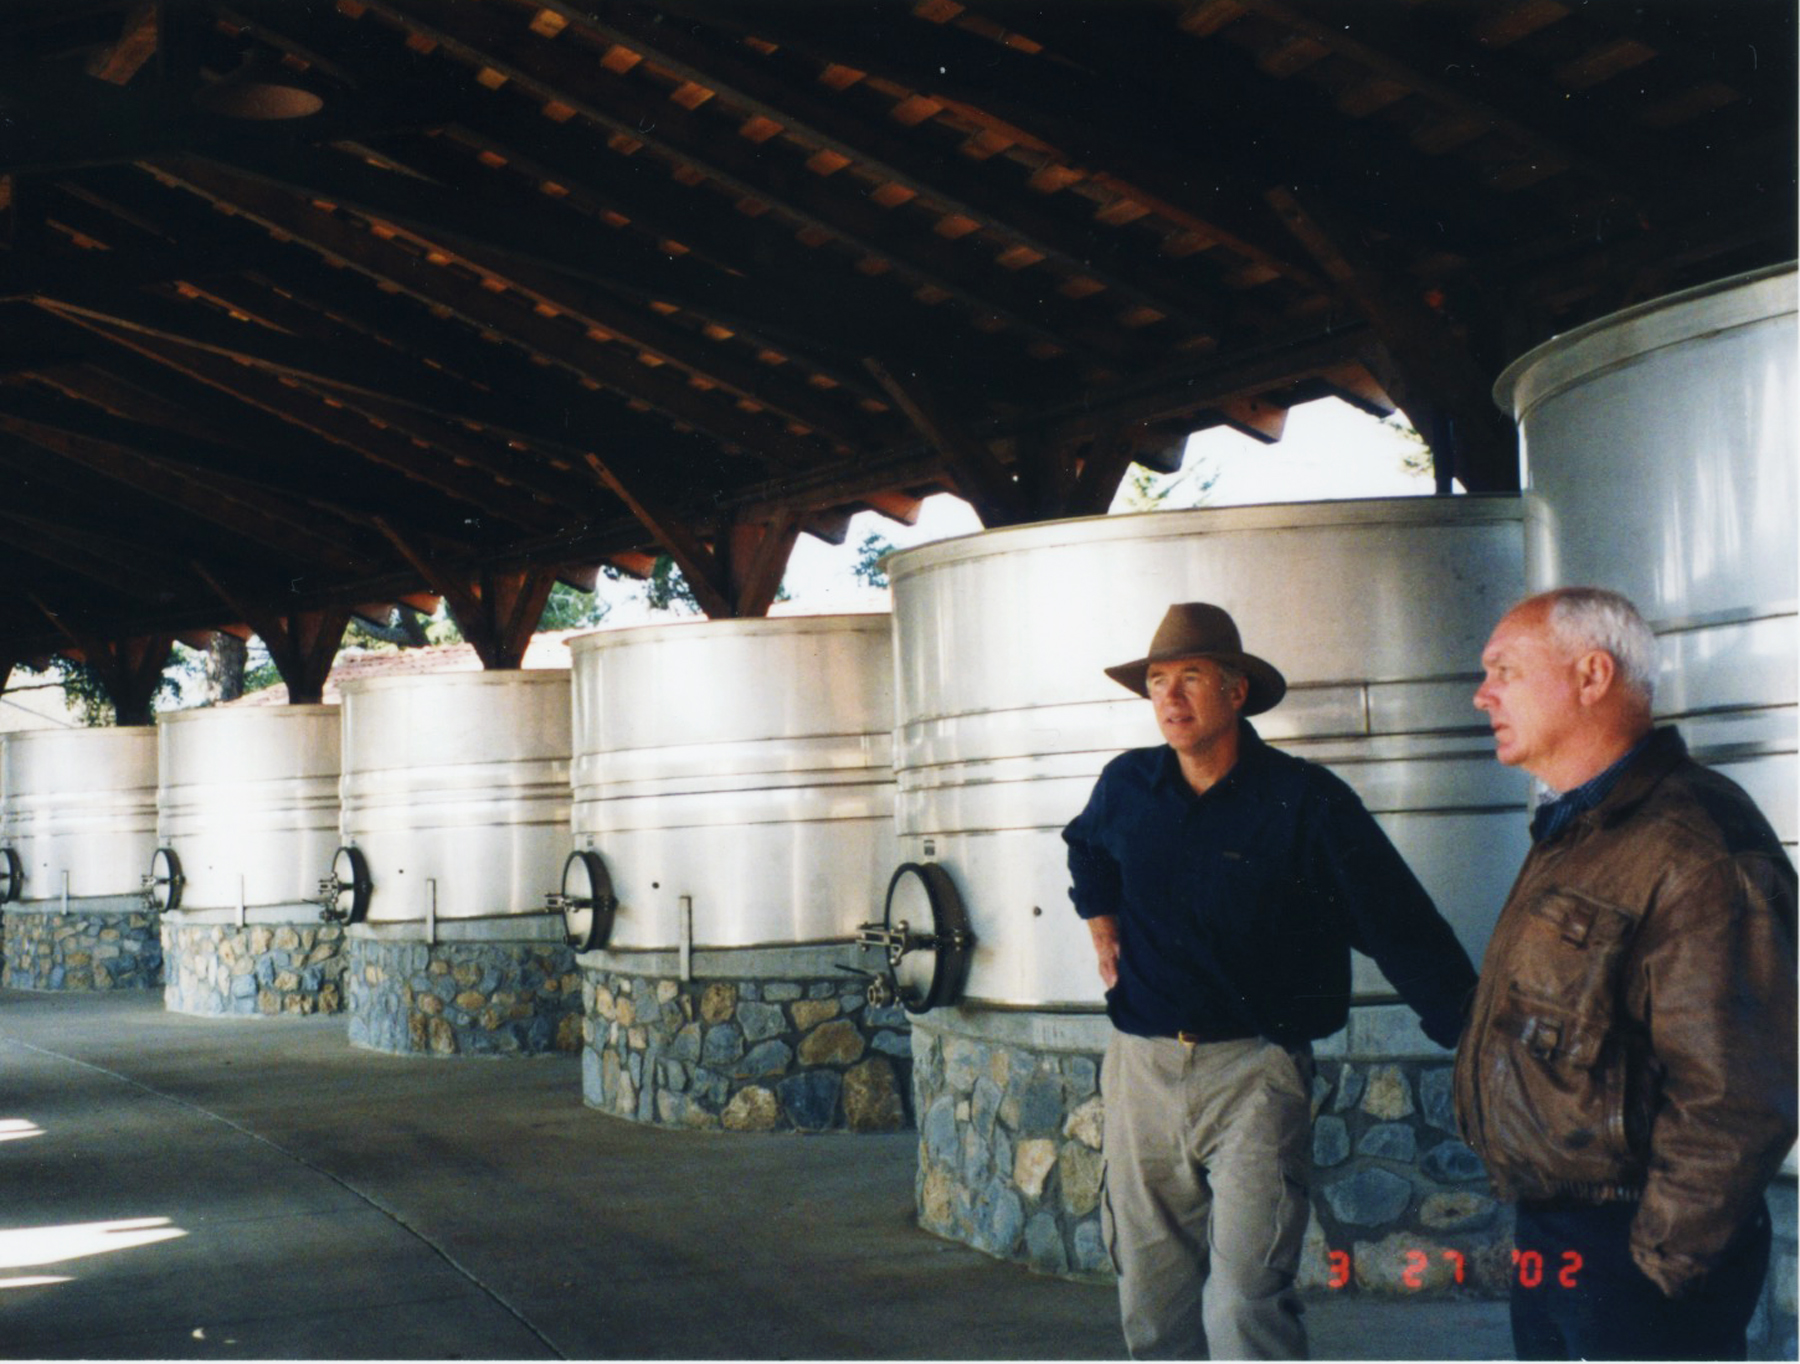 Architect, Rob Mehl, left, and Bruce, visiting the Sanford Winery in Santa Ynez.